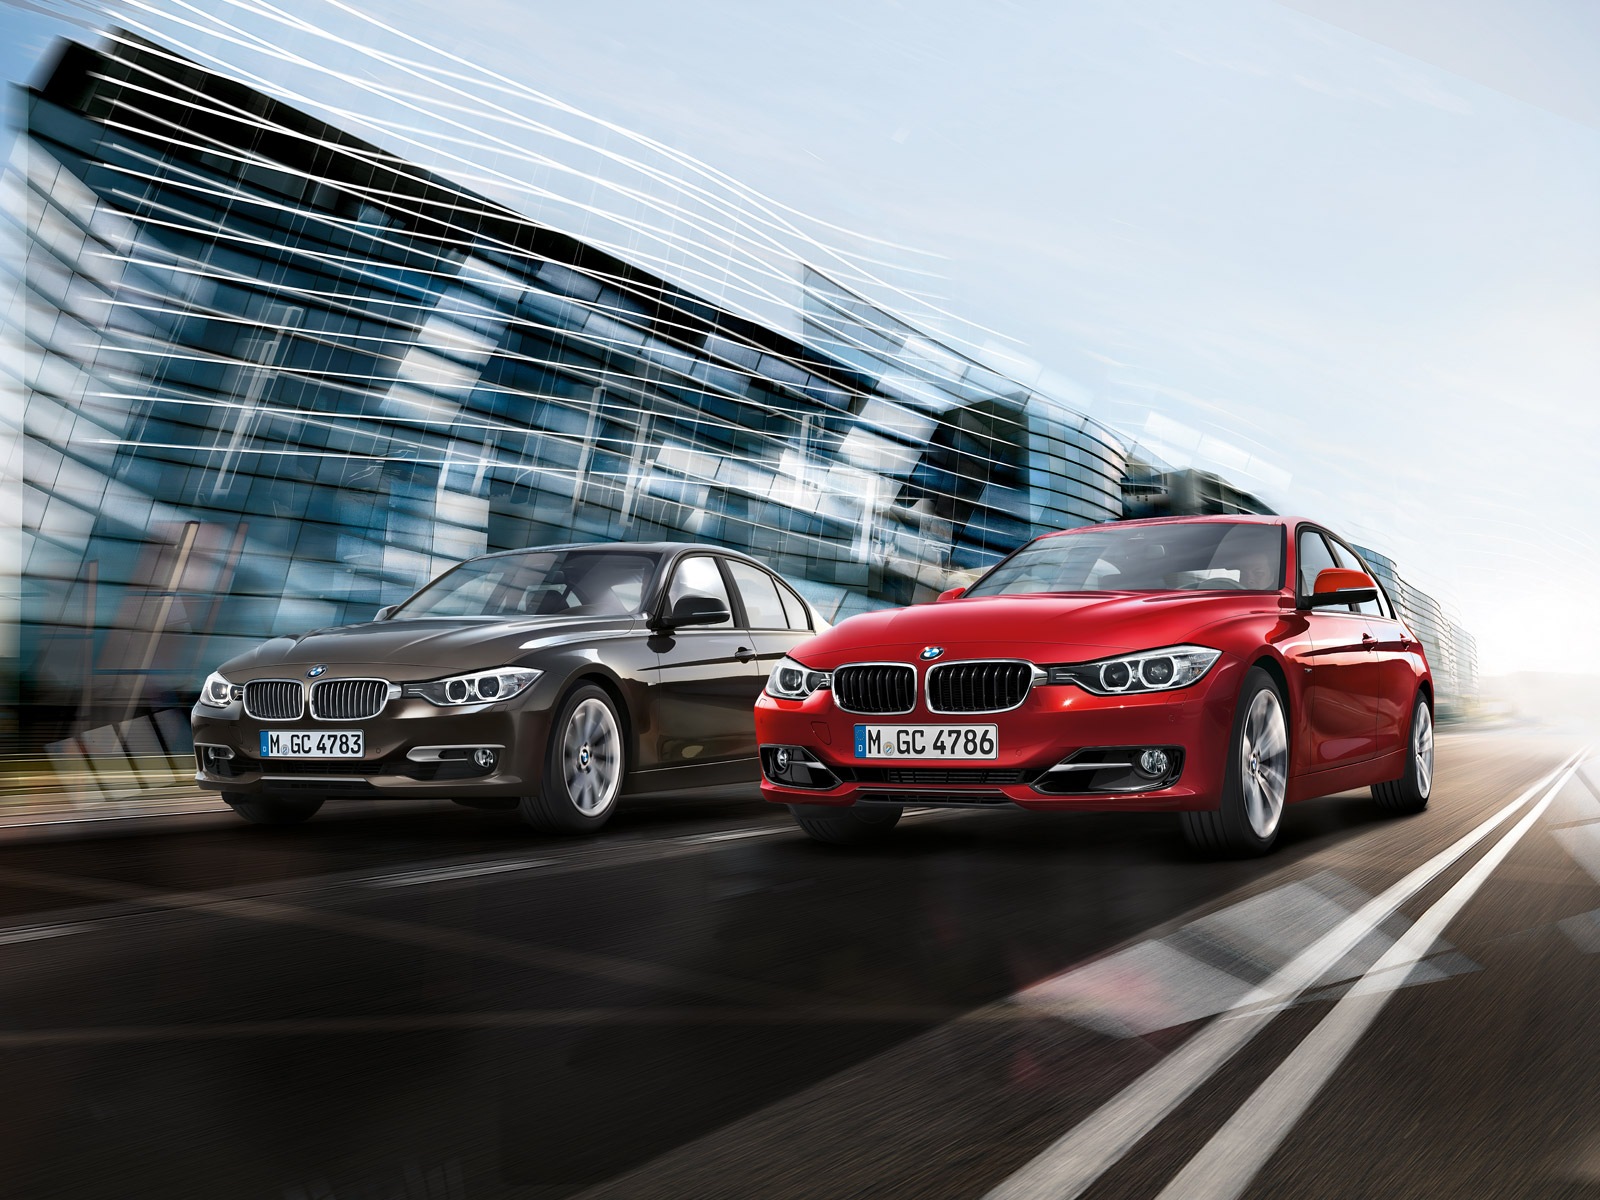 BMW_3series_wallpaper_21_1600